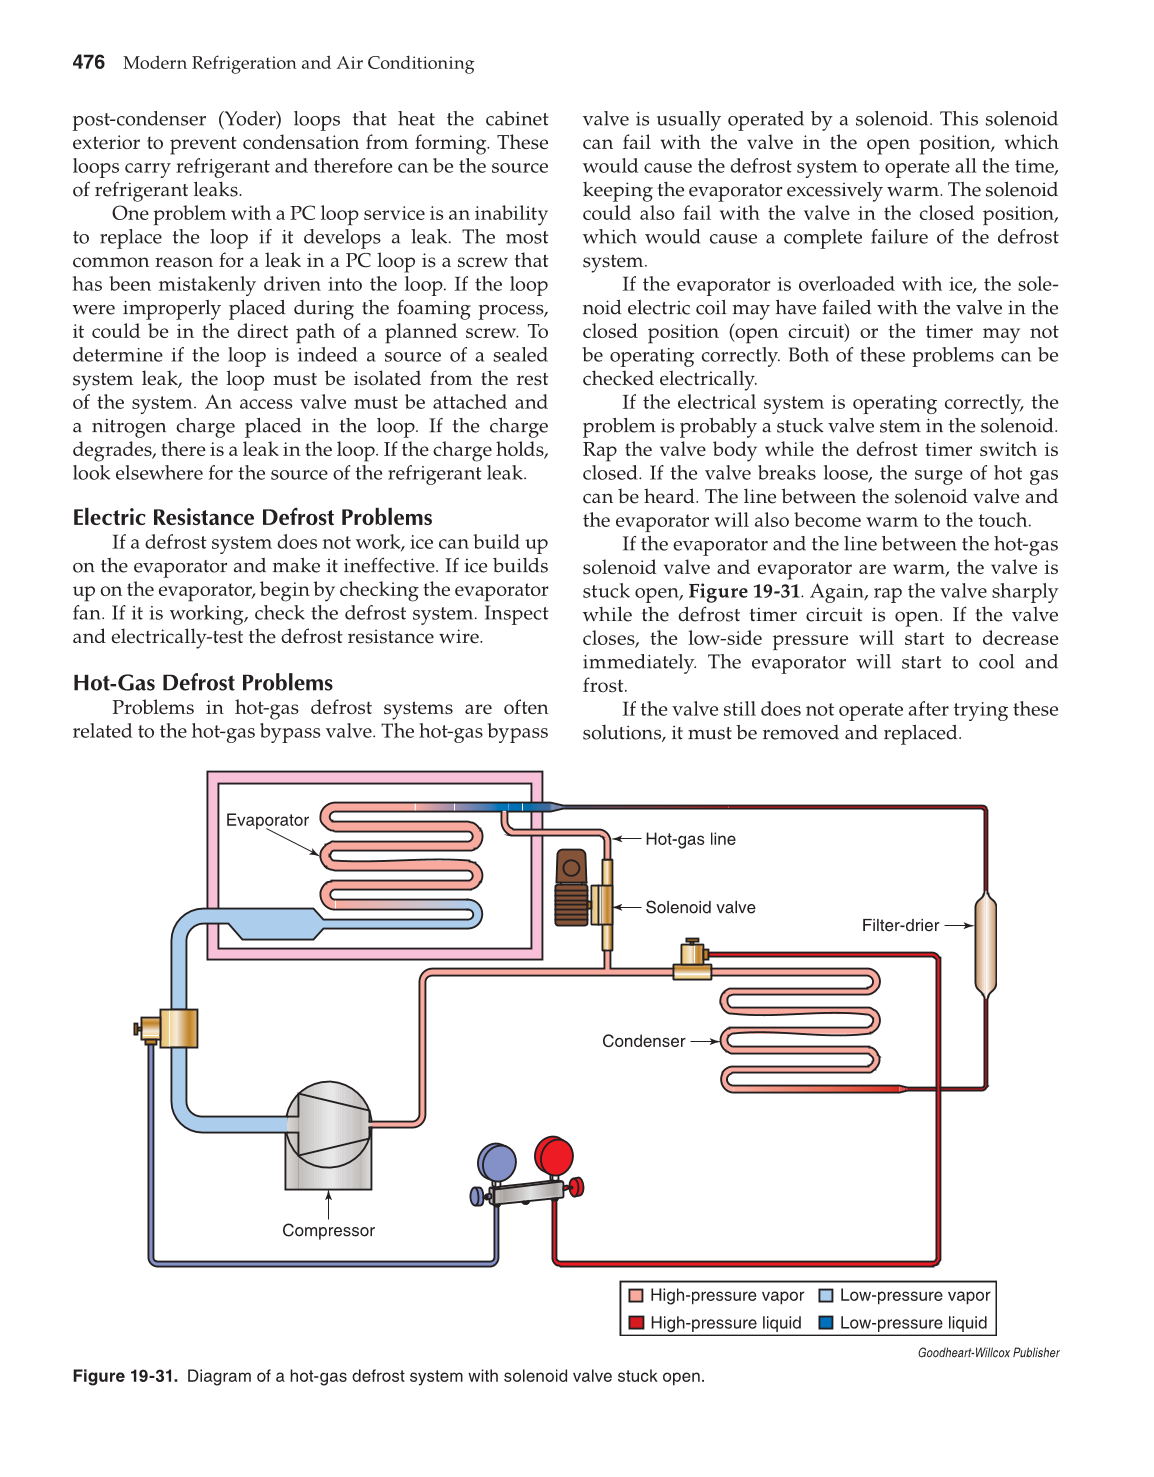 refrigeration solenoid wiring diagram modern refrigeration and air conditioning  19th edition page 476  modern refrigeration and air